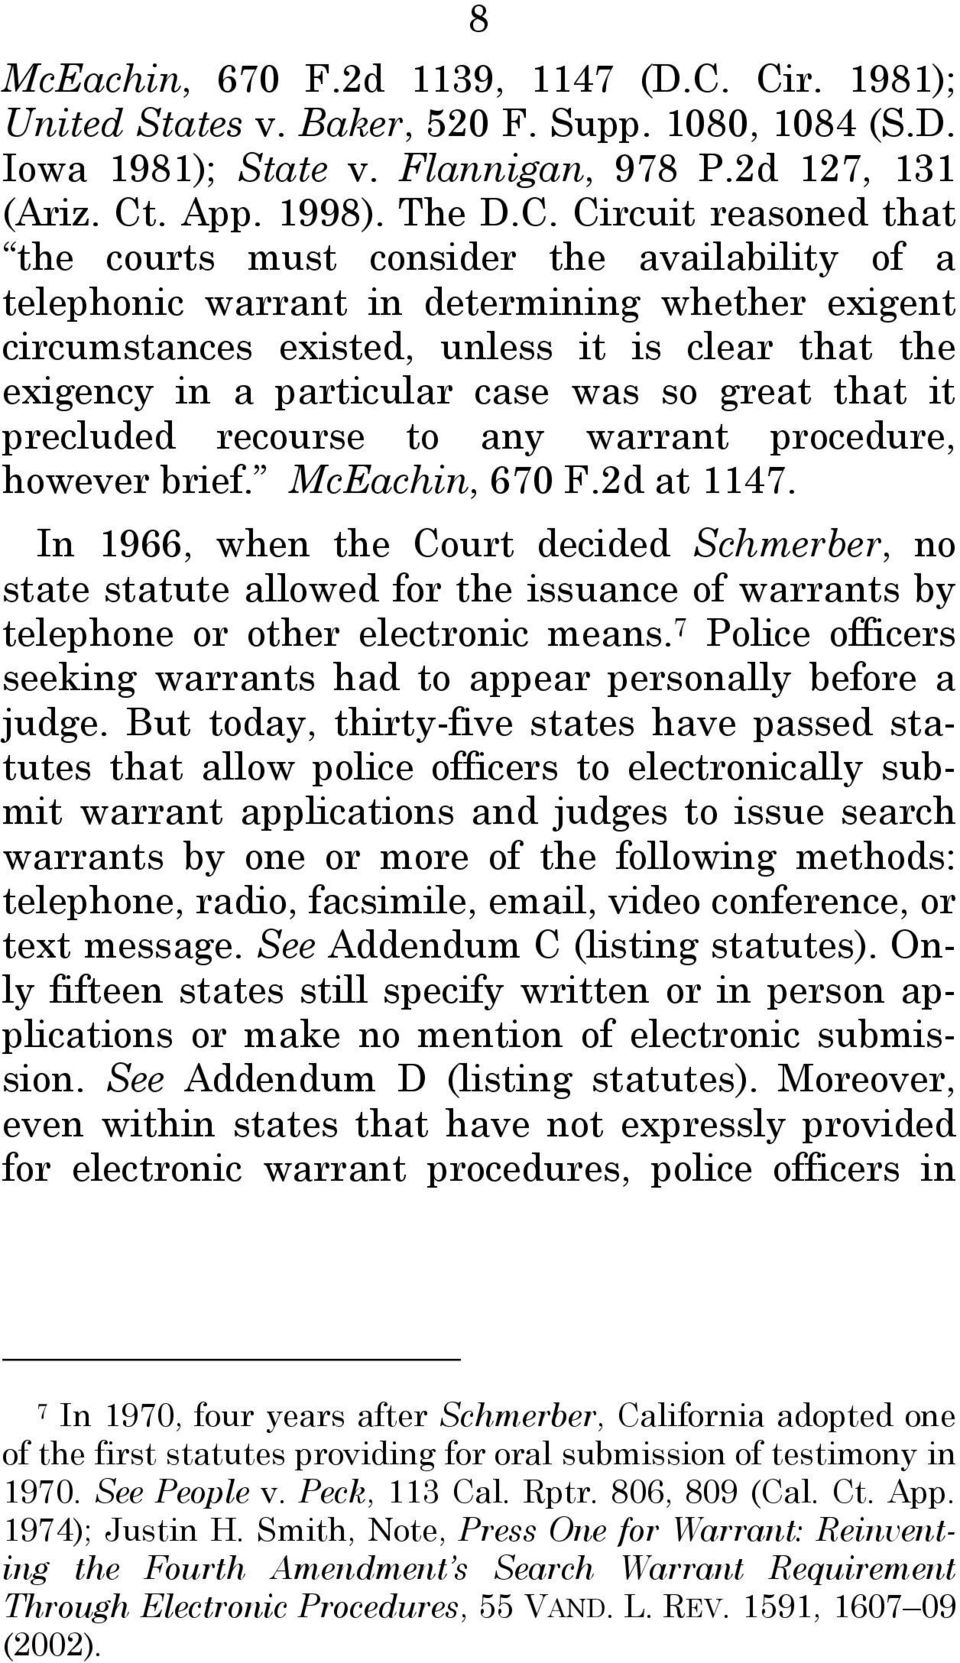 availability of a telephonic warrant in determining whether exigent circumstances existed, unless it is clear that the exigency in a particular case was so great that it precluded recourse to any